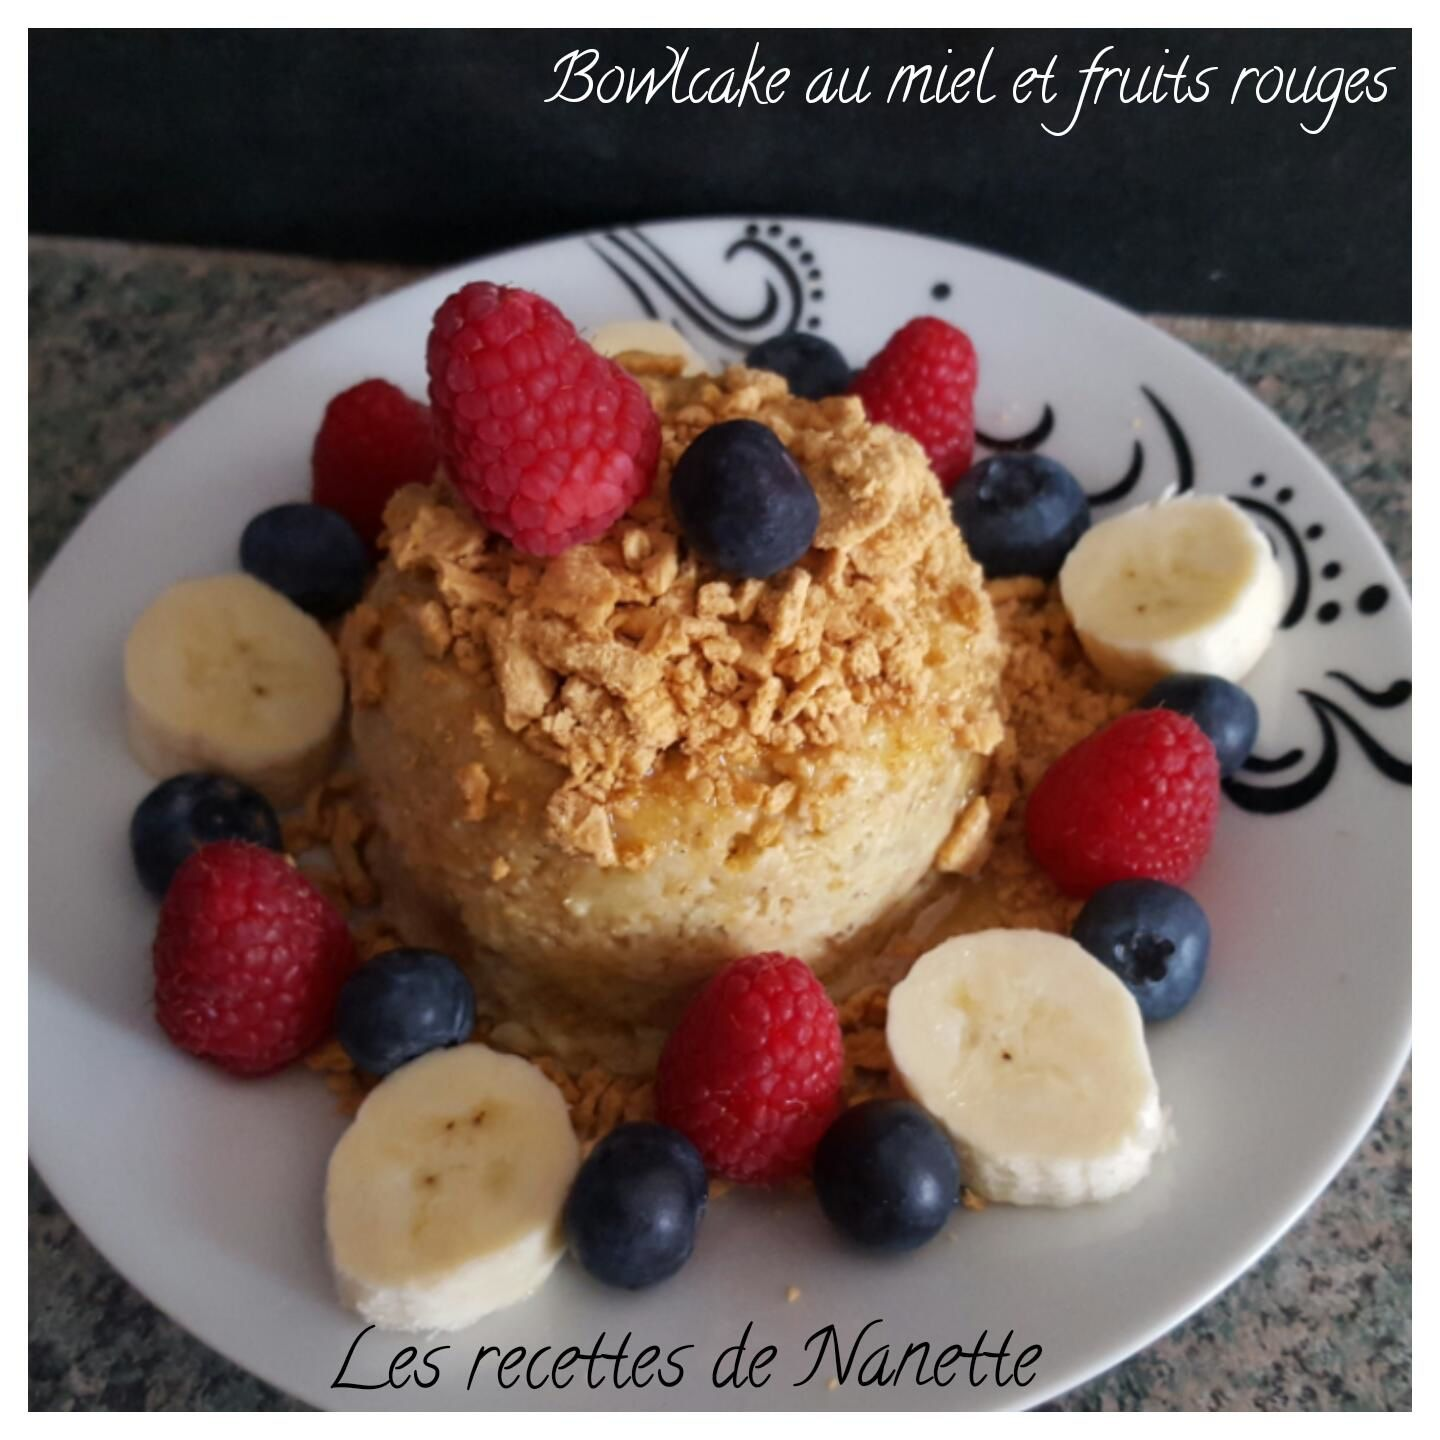 Bowlcake au miel et fruits rouges